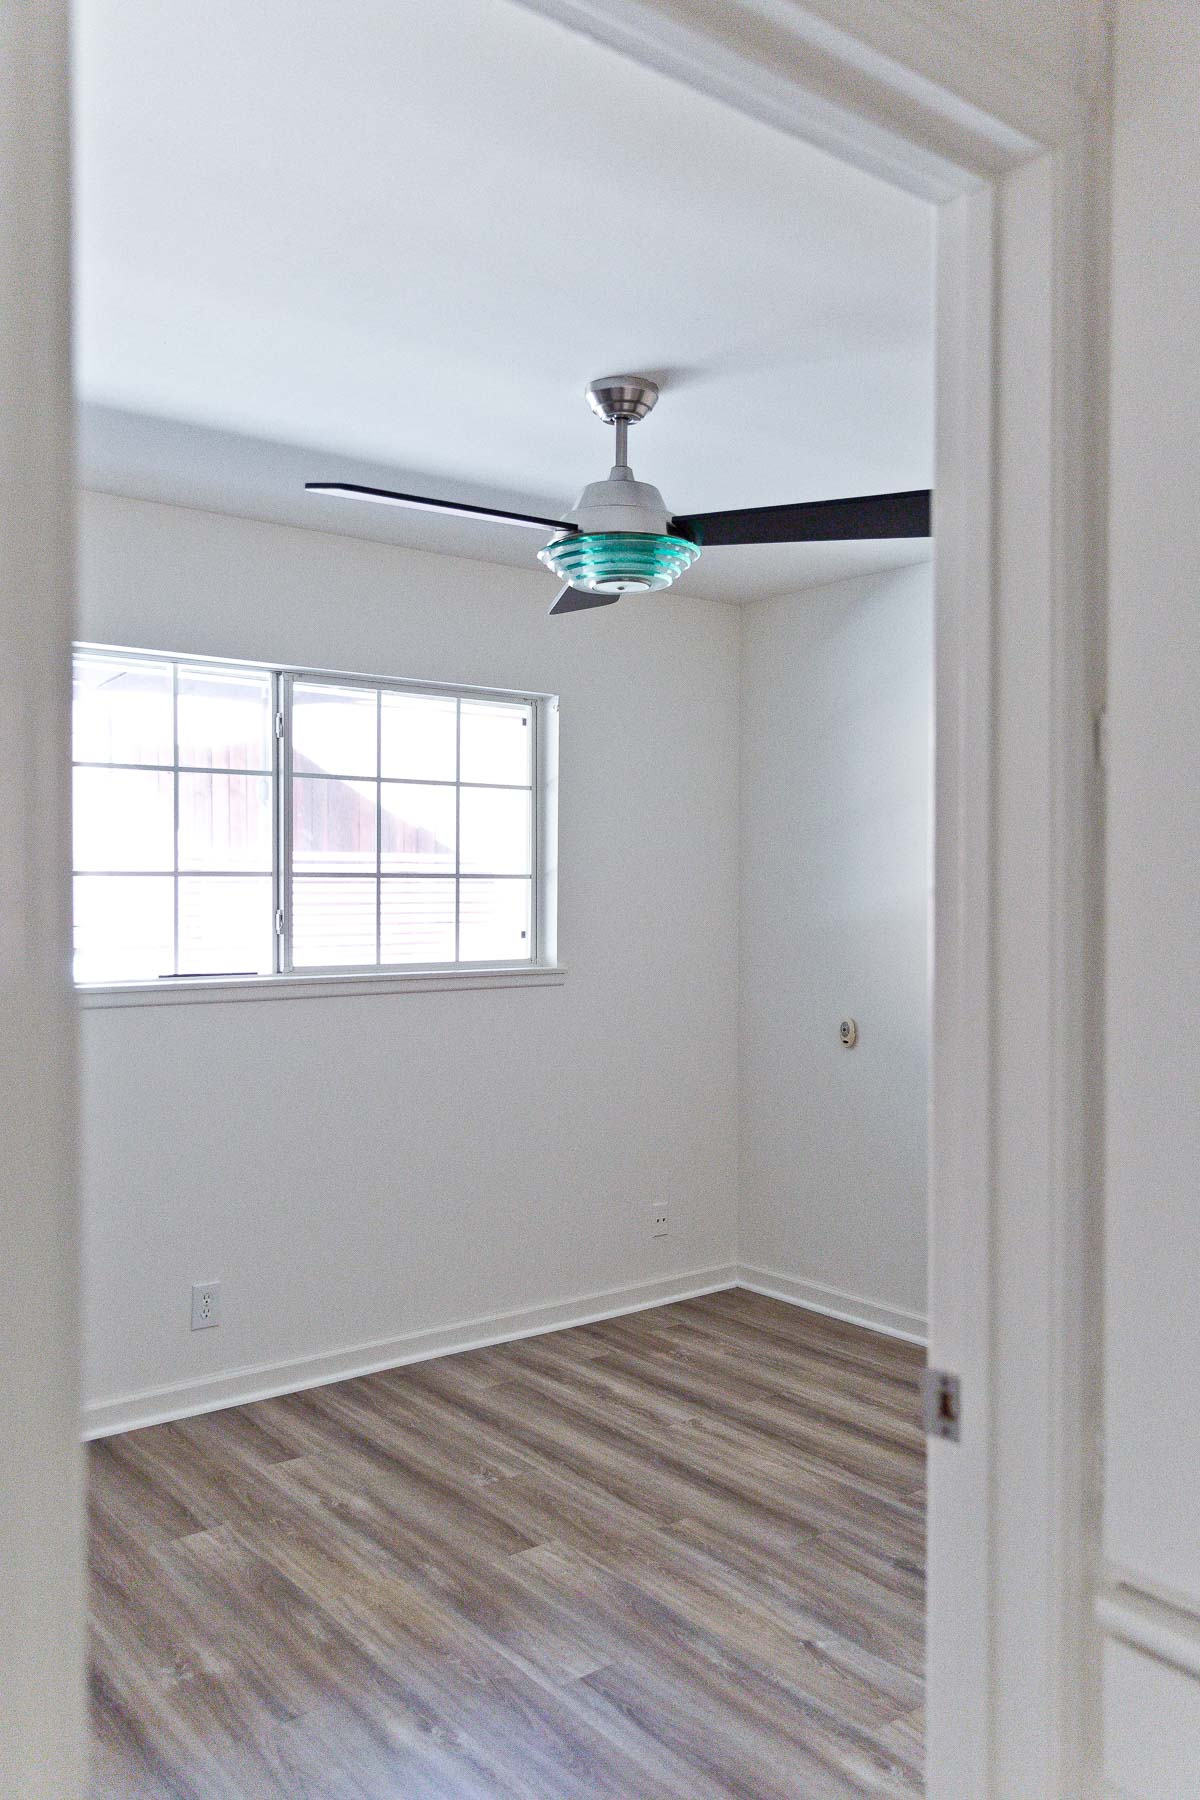 Photo of small, empty bedroom with ceiling fan.